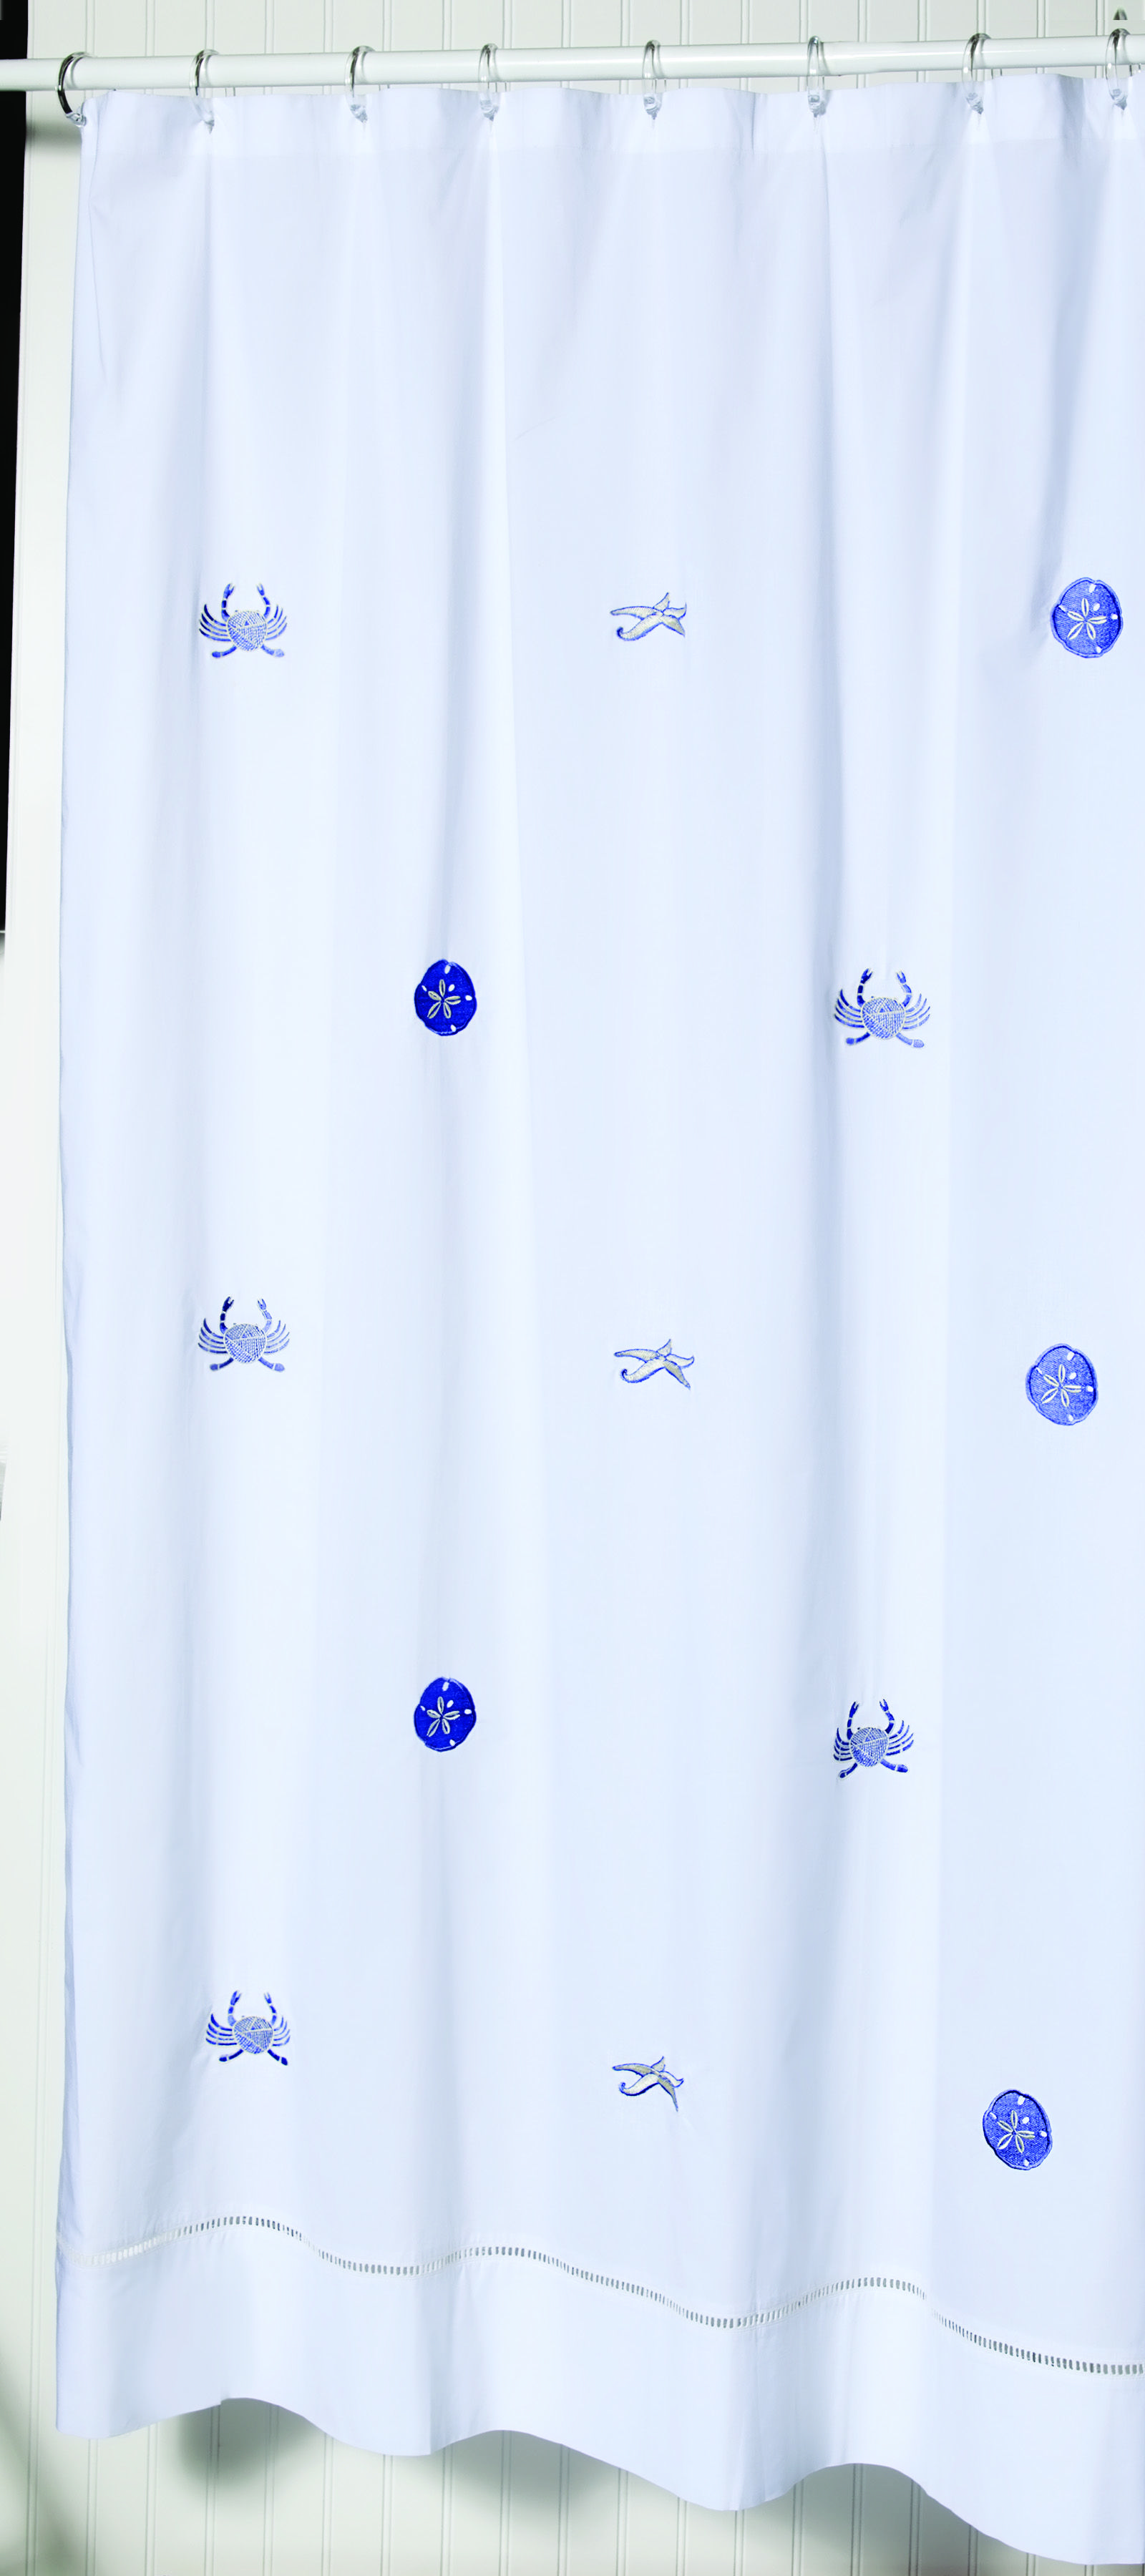 #embroidered #showercurtains Beautiful embroidered 100% cotton bathroom shower curtains #jacarandaliving